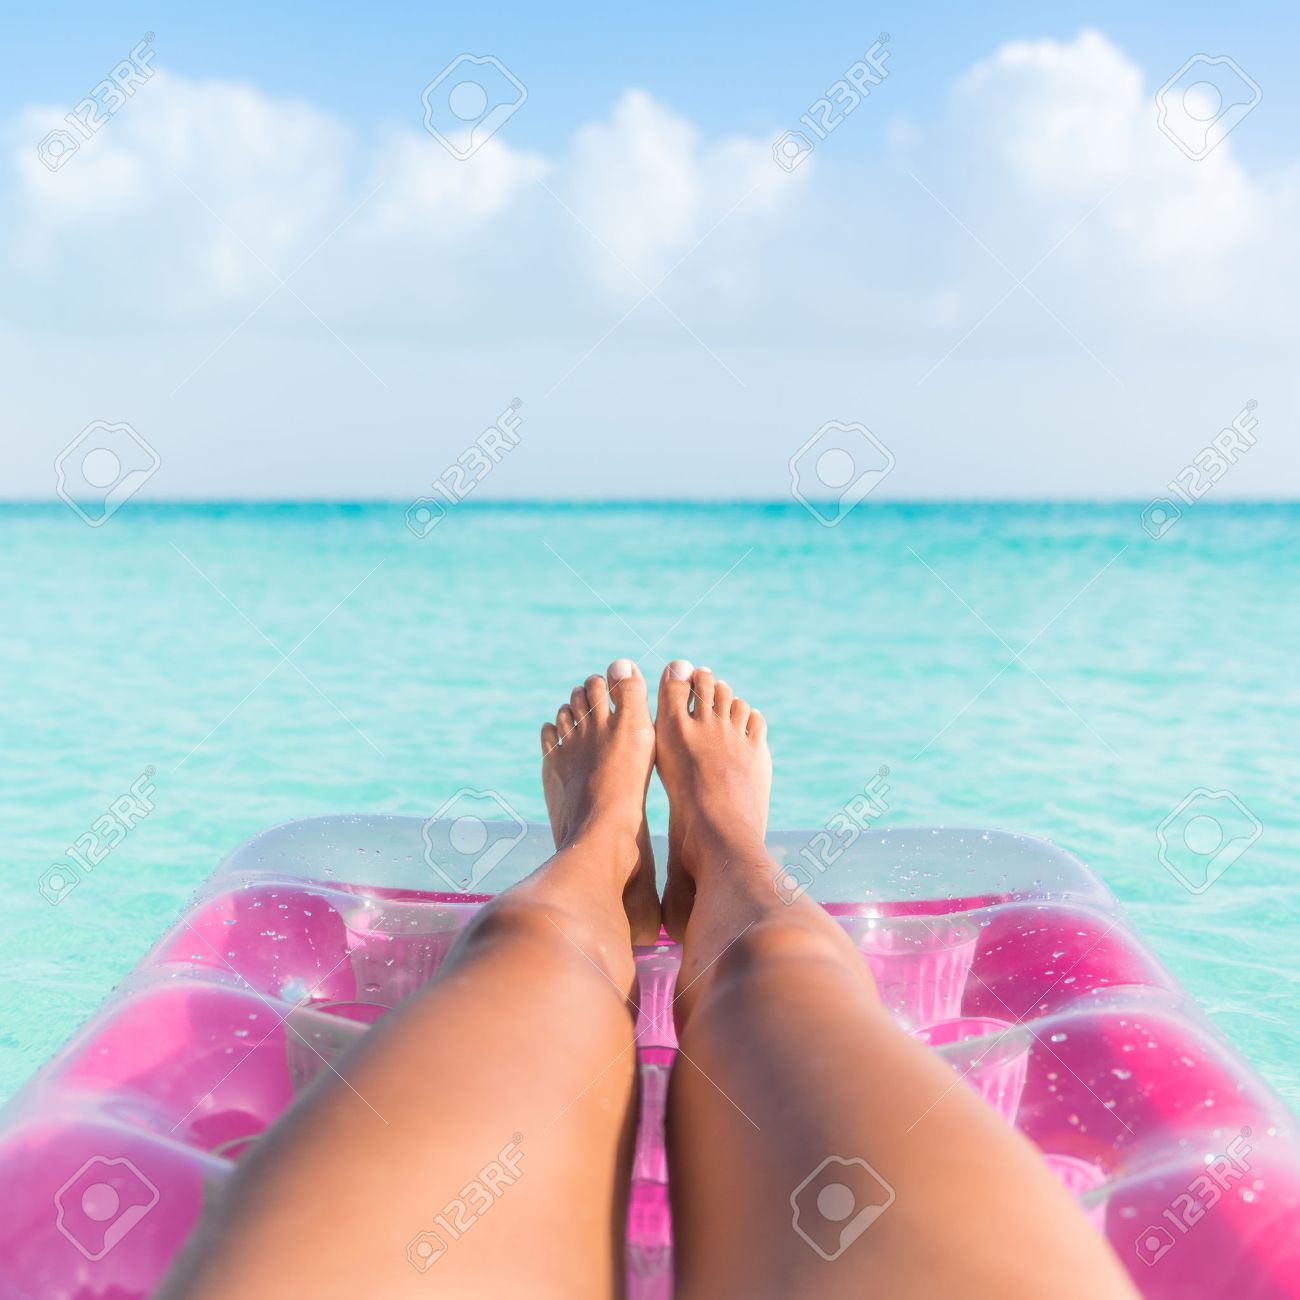 Summer vacation girl lower body closeup. Woman tanning legs  relaxing in ocean on pink inflatable swimming pool air mattress bed floating in turquoise water background. Suntan at tropical beach. Banque d'images - 54264152